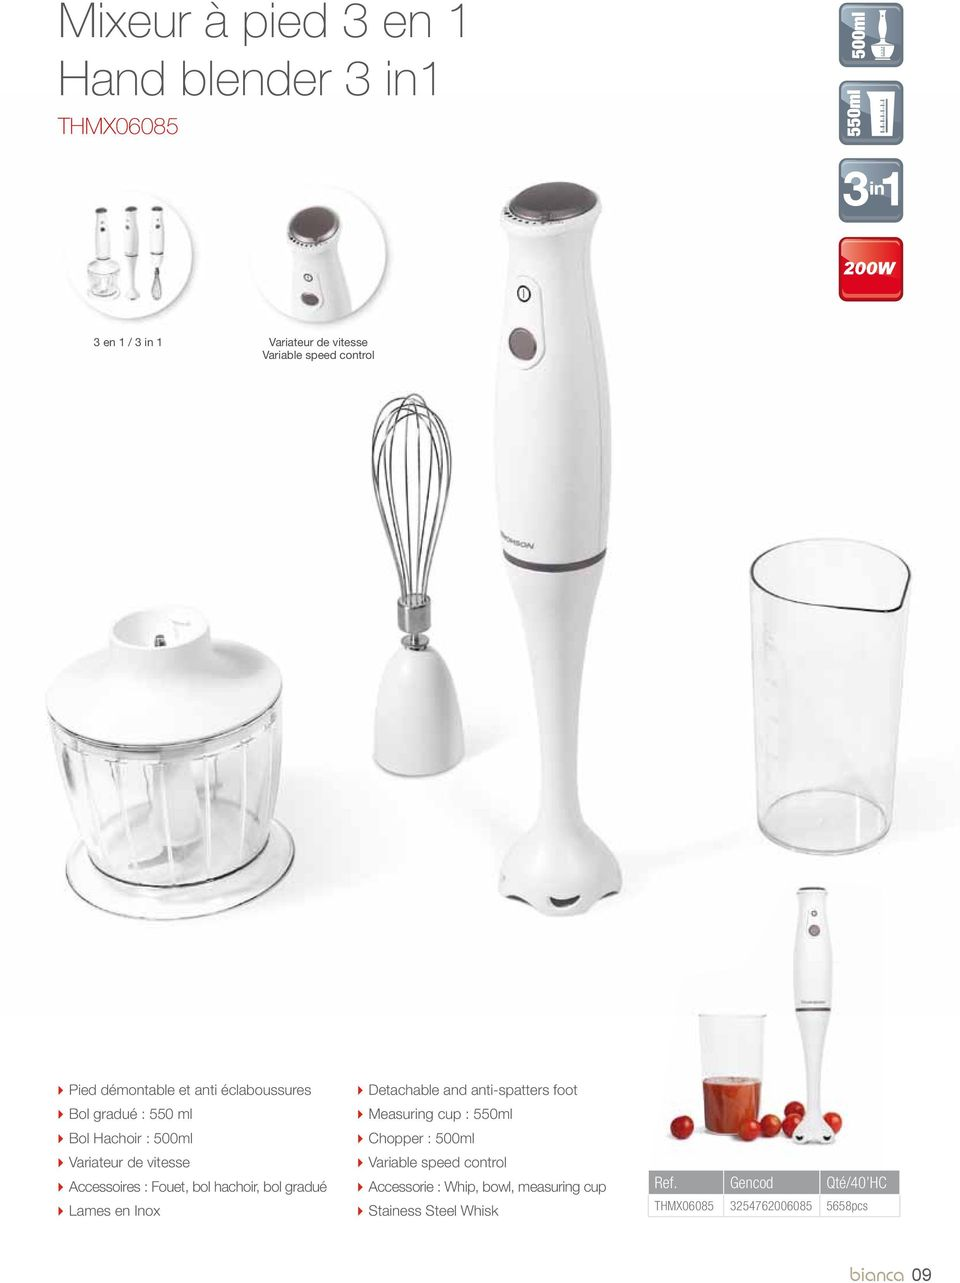 bol hachoir, bol gradué Lames en Inox Detachable and anti-spatters foot Measuring cup : 550ml Chopper : 500ml